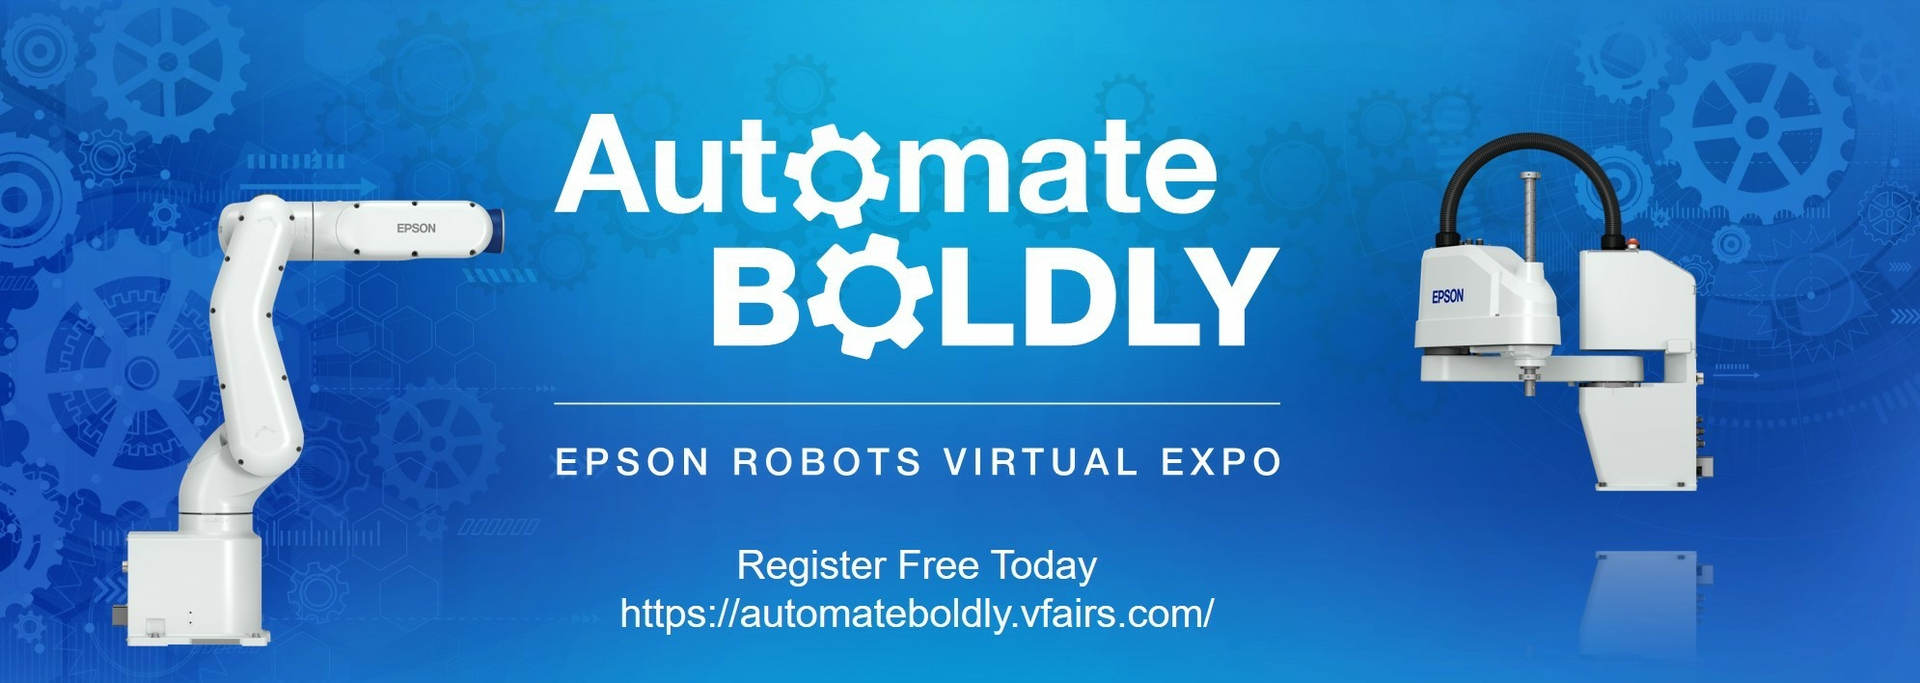 Automate Boldly PRESS